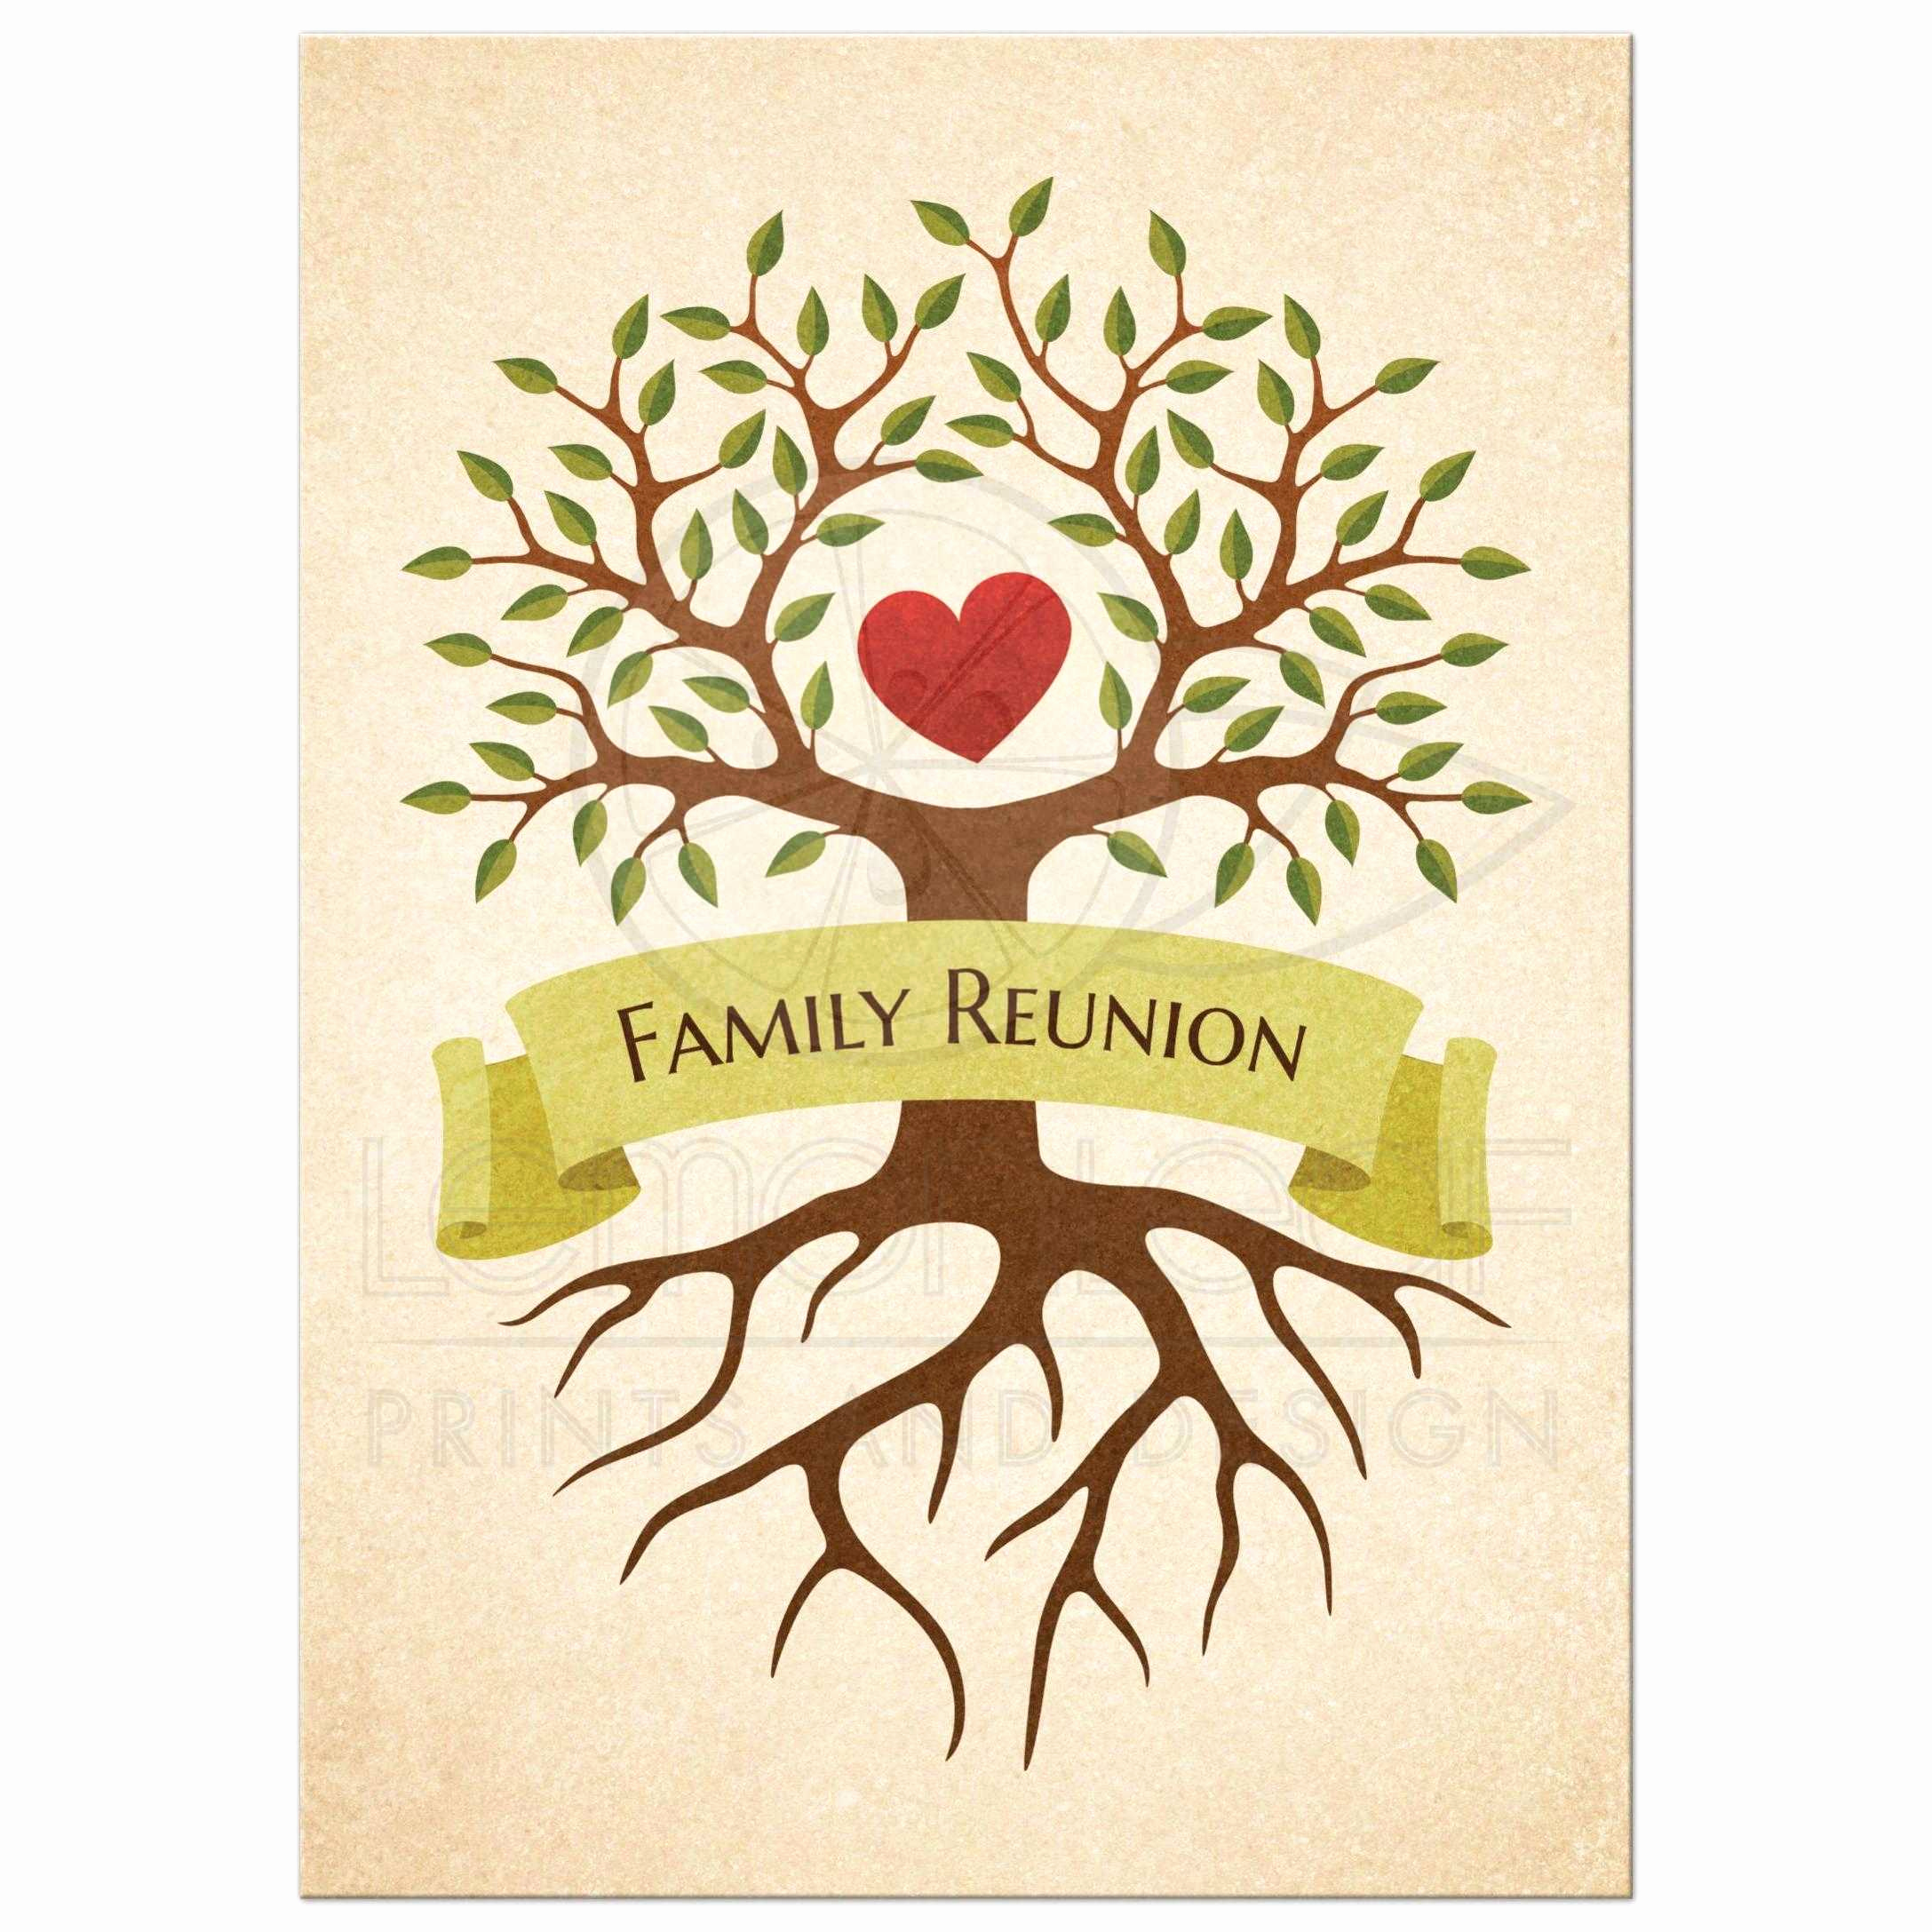 Family Reunion Invitation Ideas Awesome Family Reunion Invitations with Beautiful Heart Tree